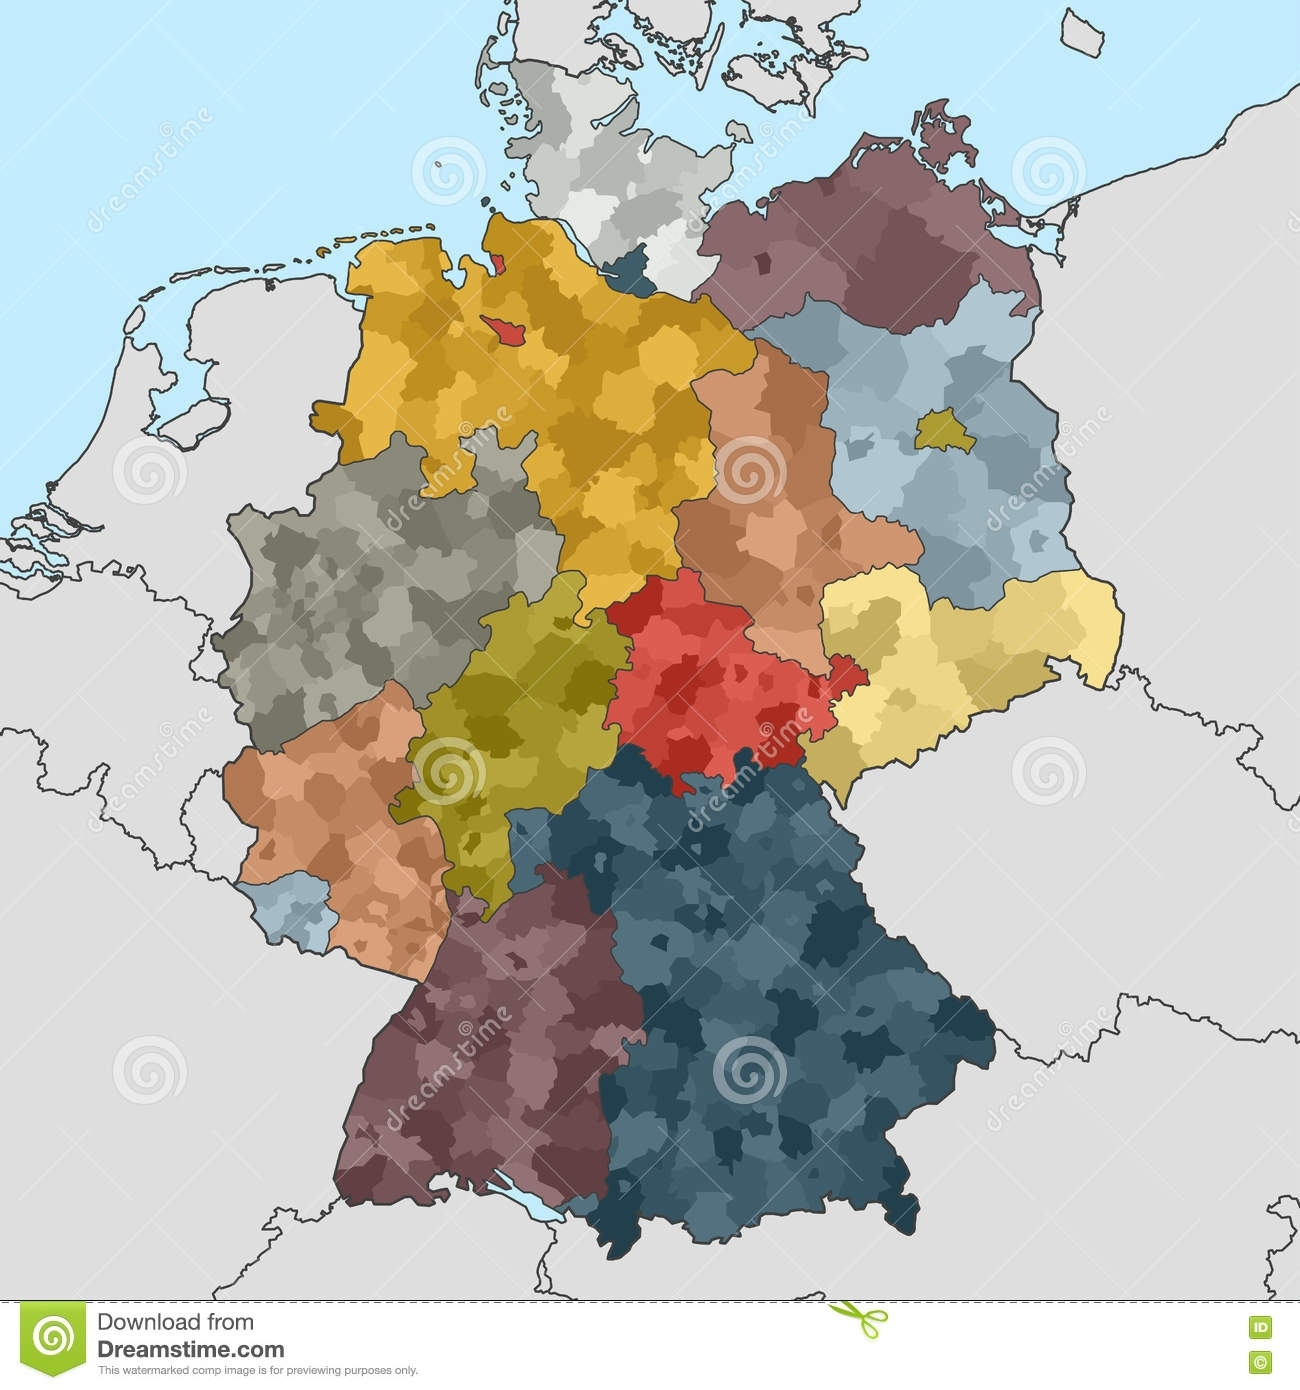 Map Of Germany With Neighboring Countries Stock Vector with Map Of Germany And Surrounding Countries